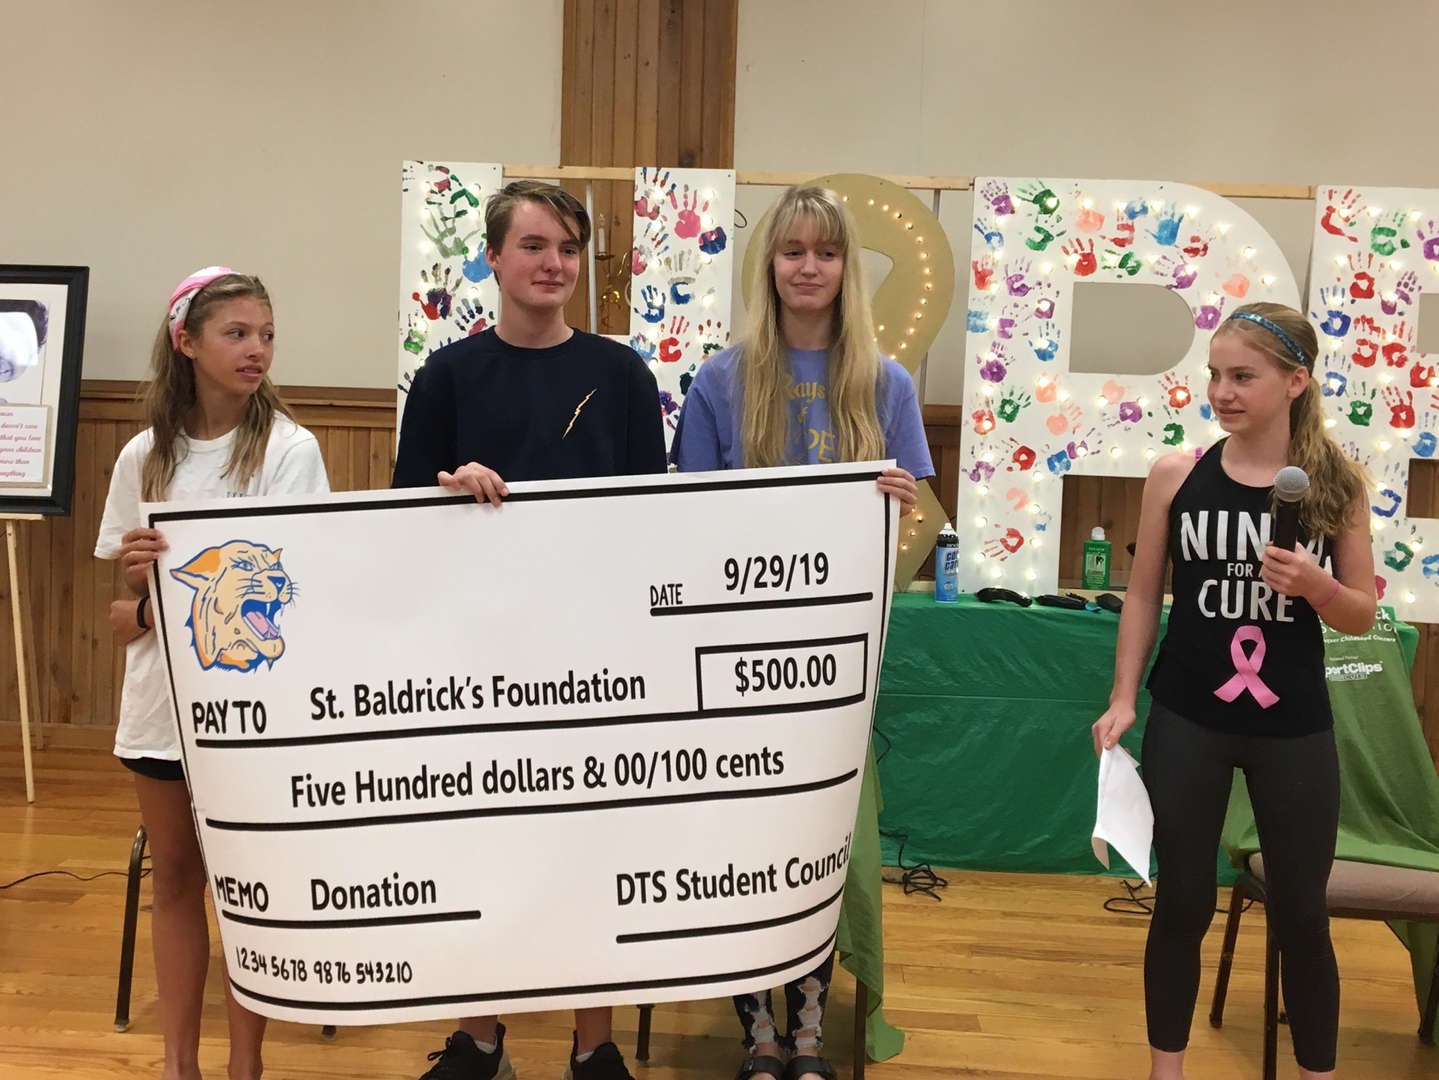 DTS Student Council donation to St. Baldrick's